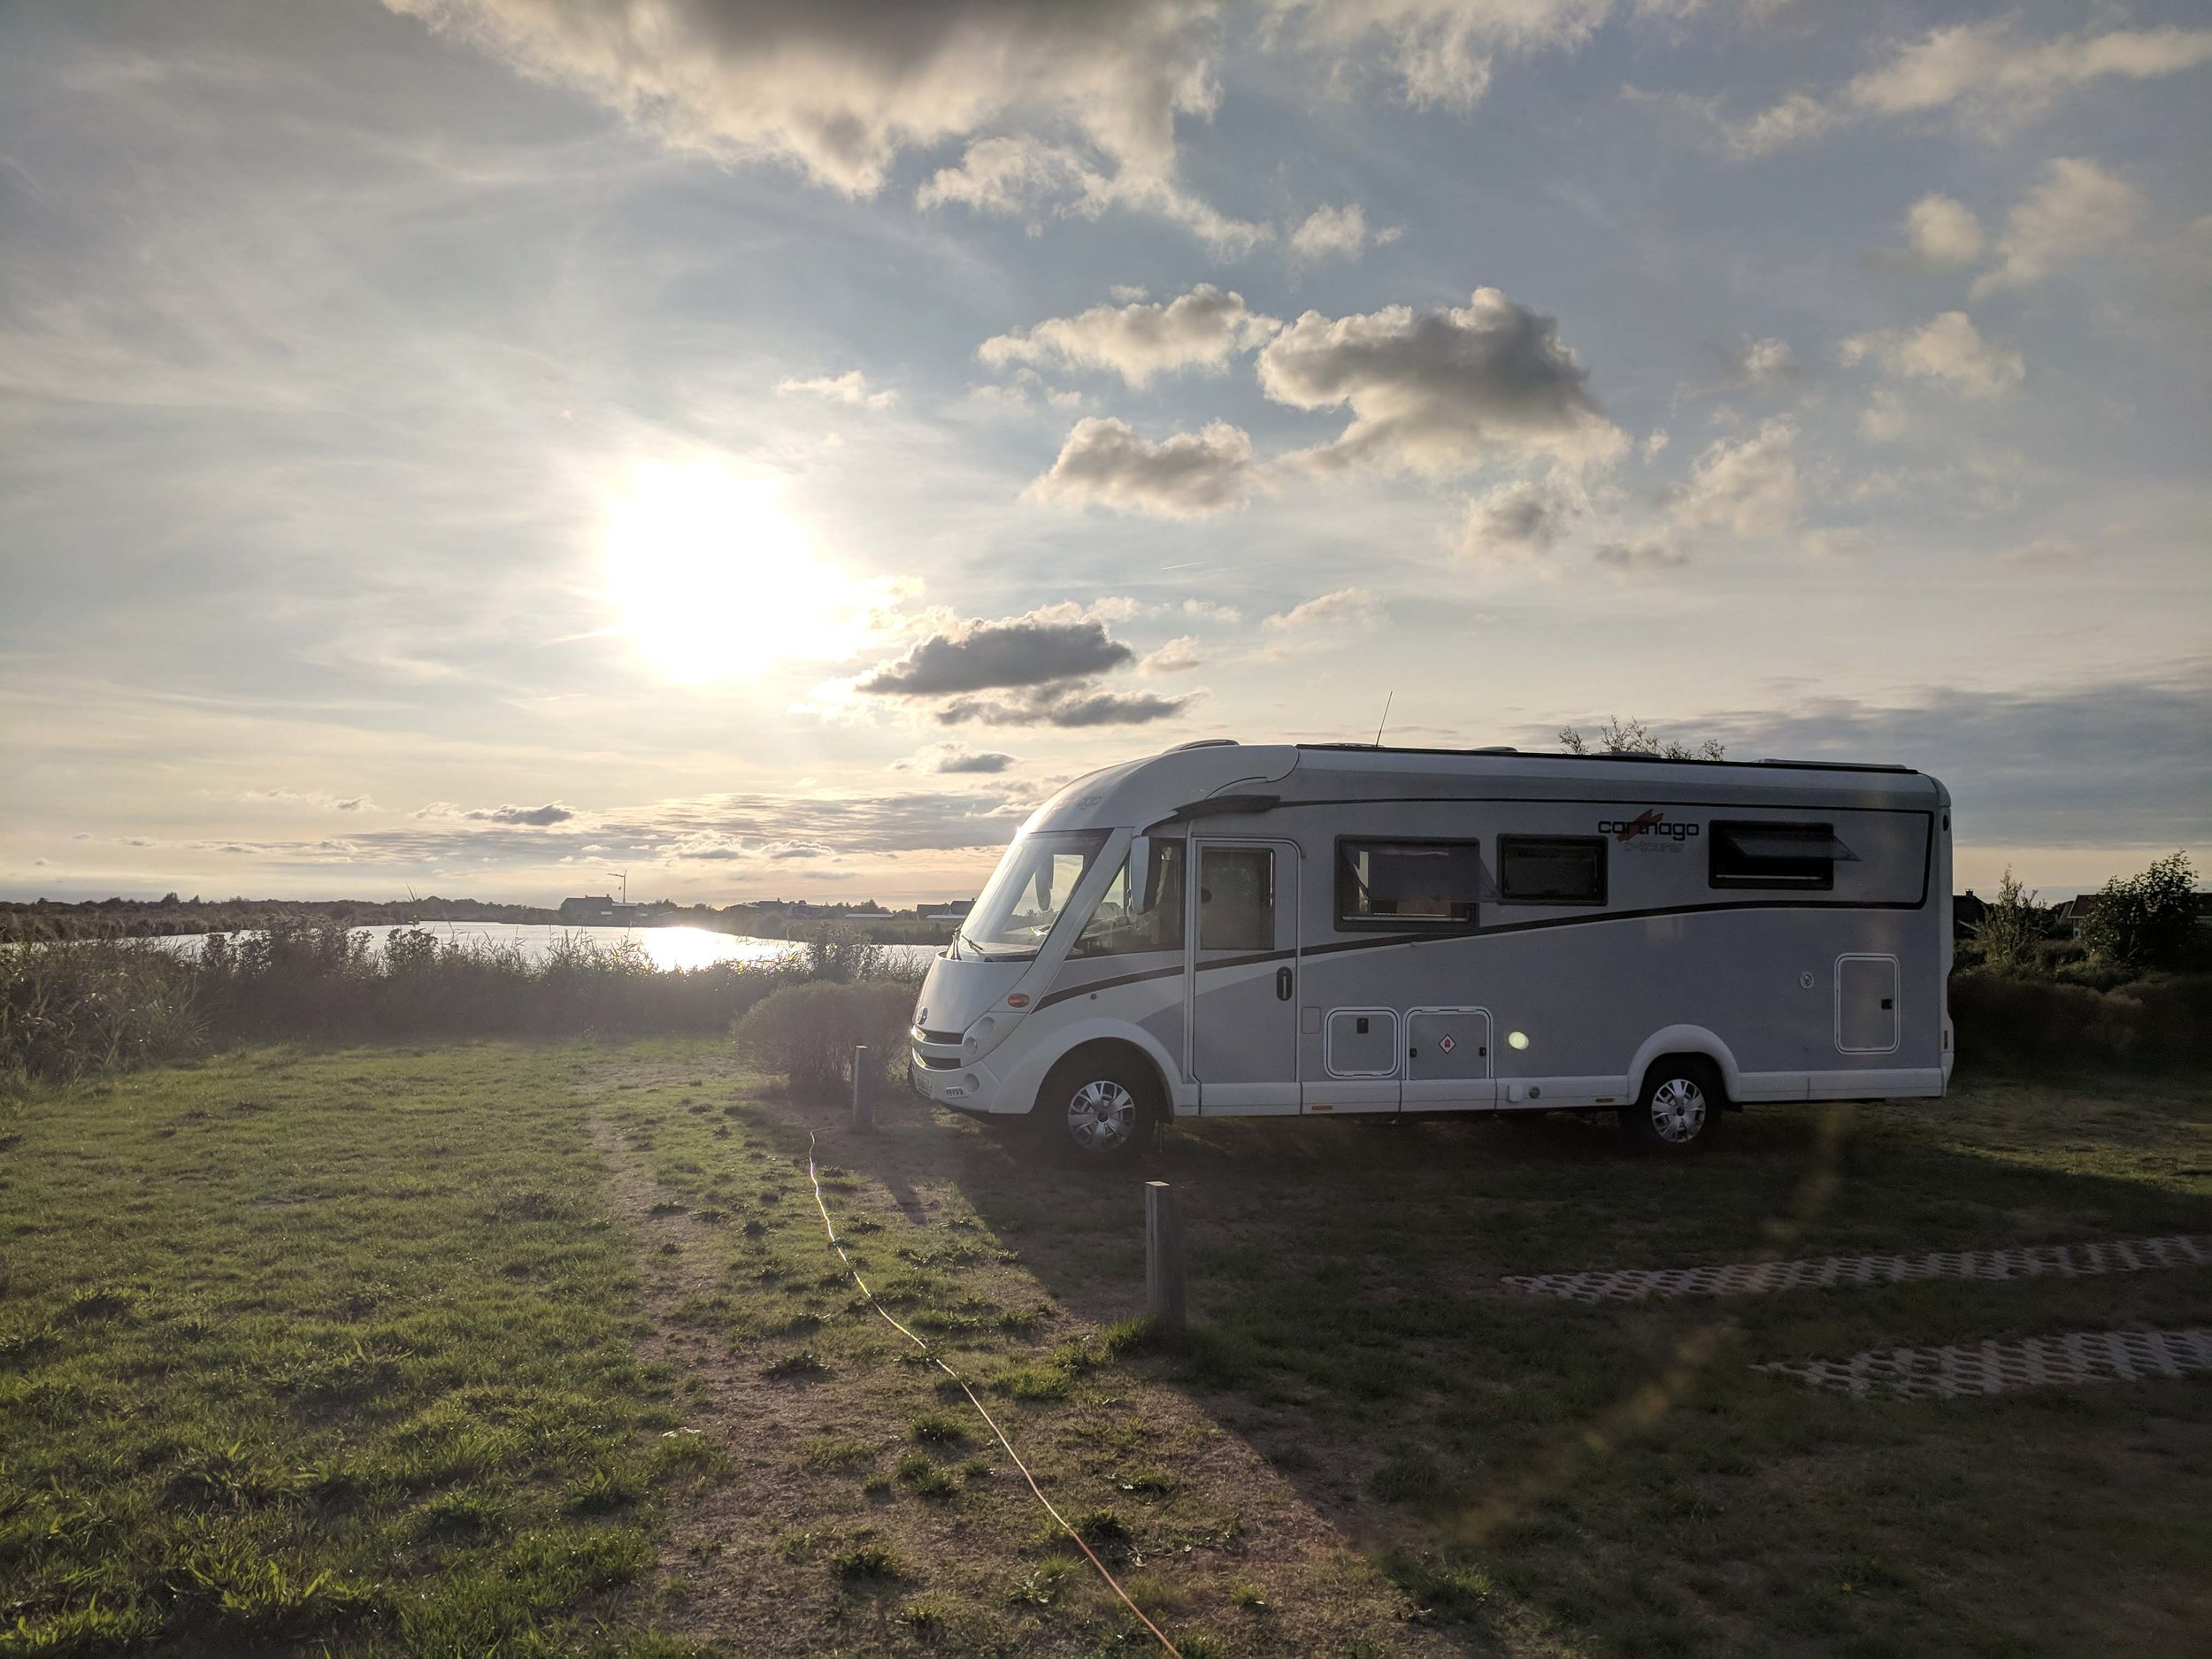 Our new home on wheels